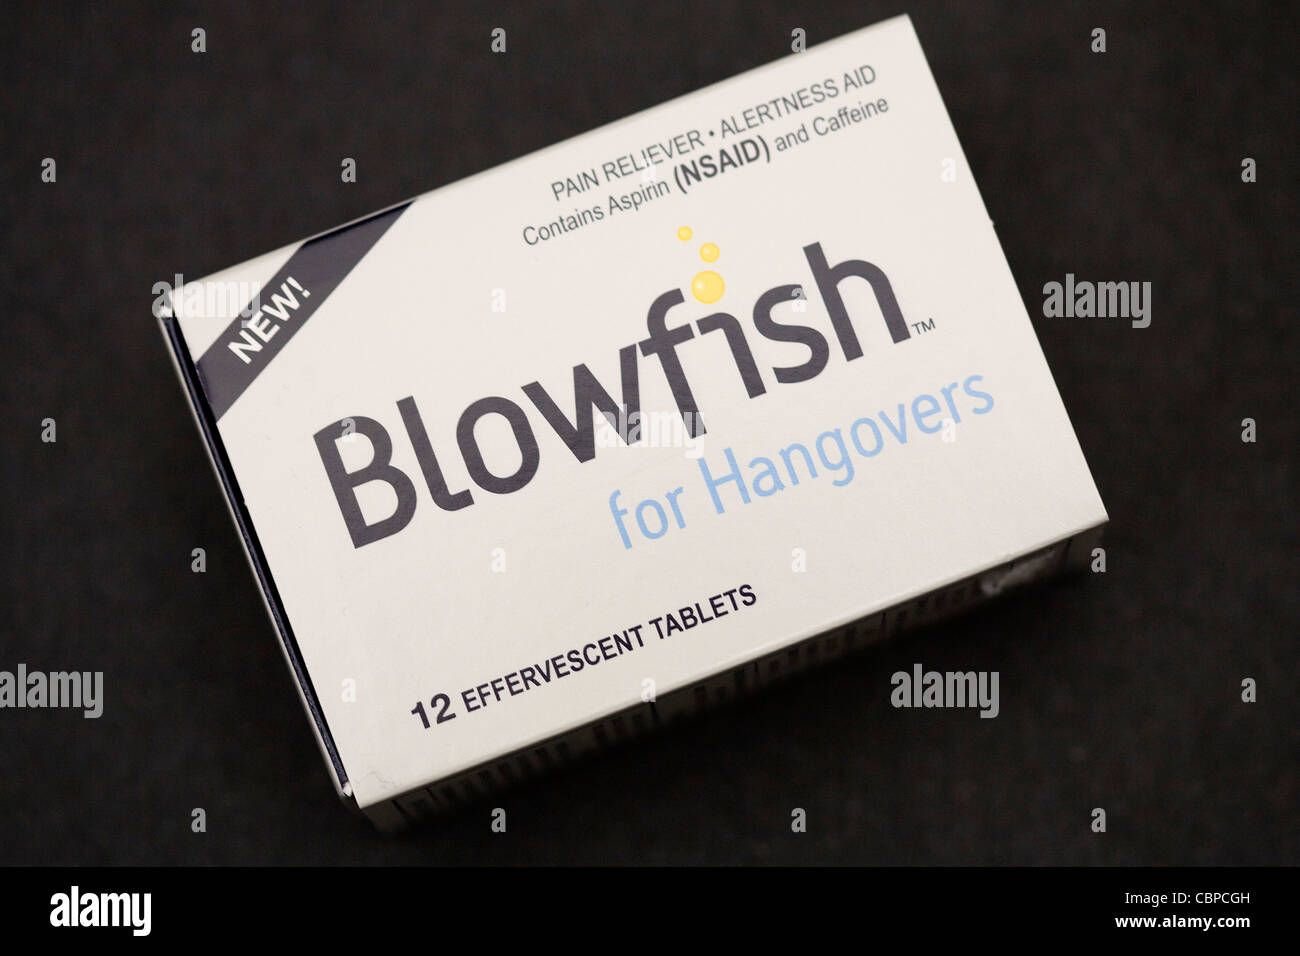 Blowfish- FDA approved hangover cure.  - Stock Image